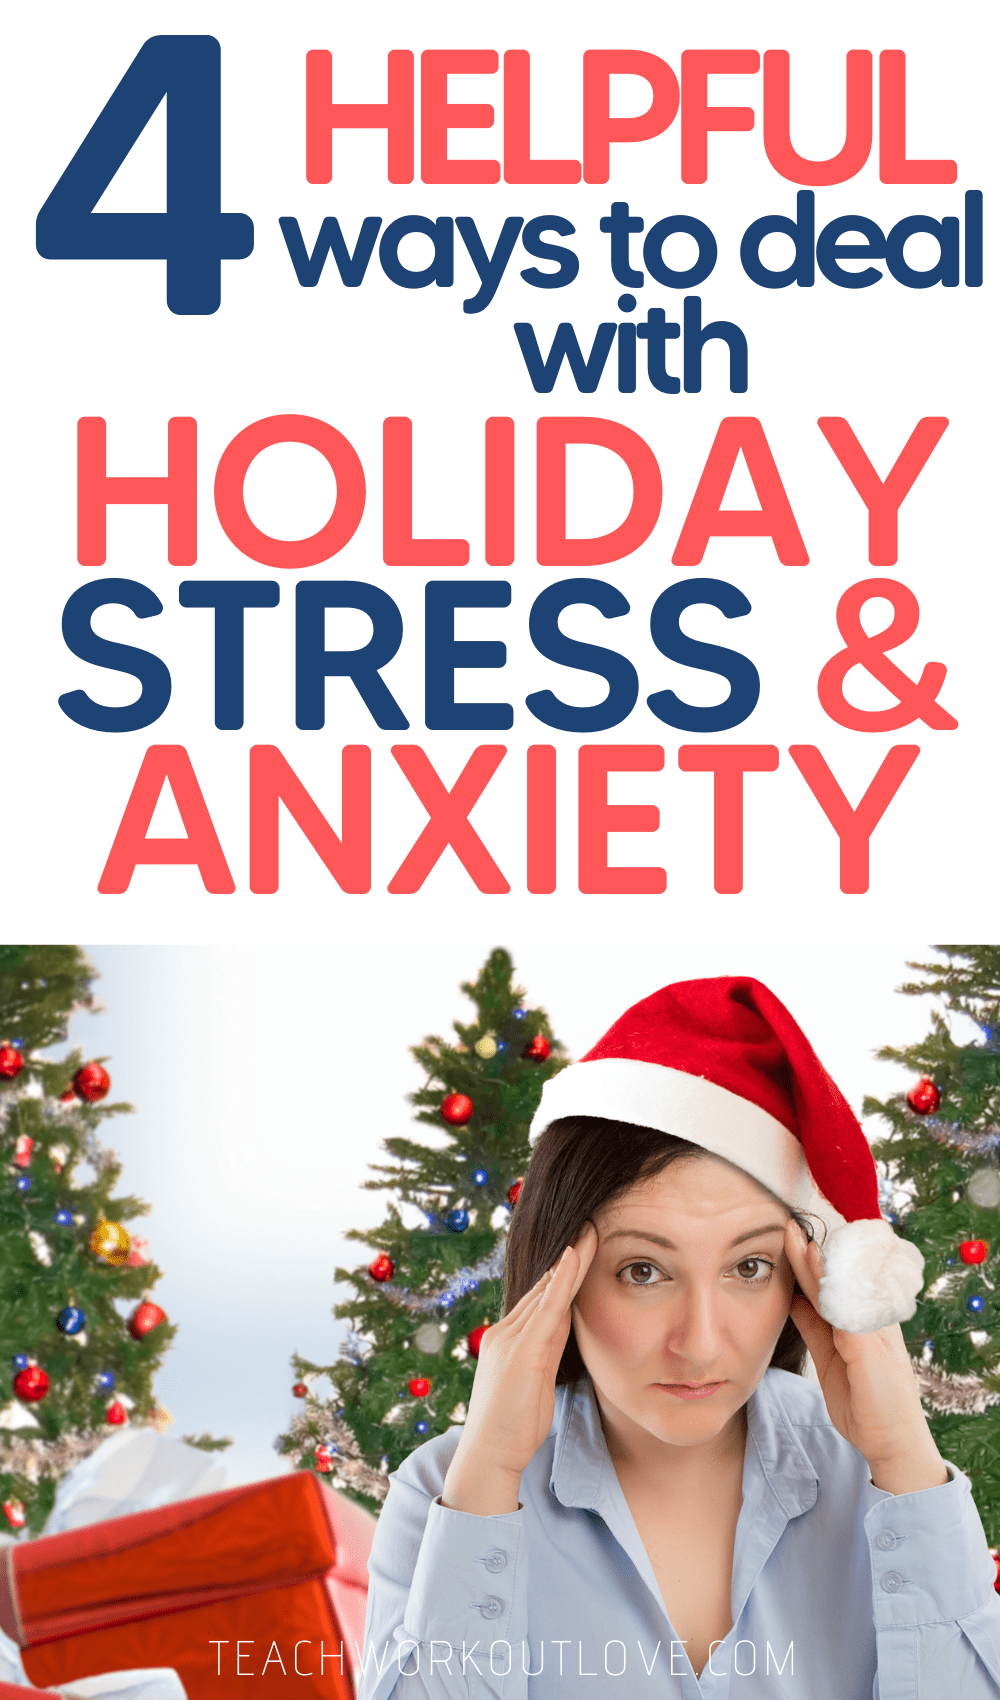 During the holidays, many times we often become sad. This article will give 4 key ways to deal with holiday anxiety and stress this year.